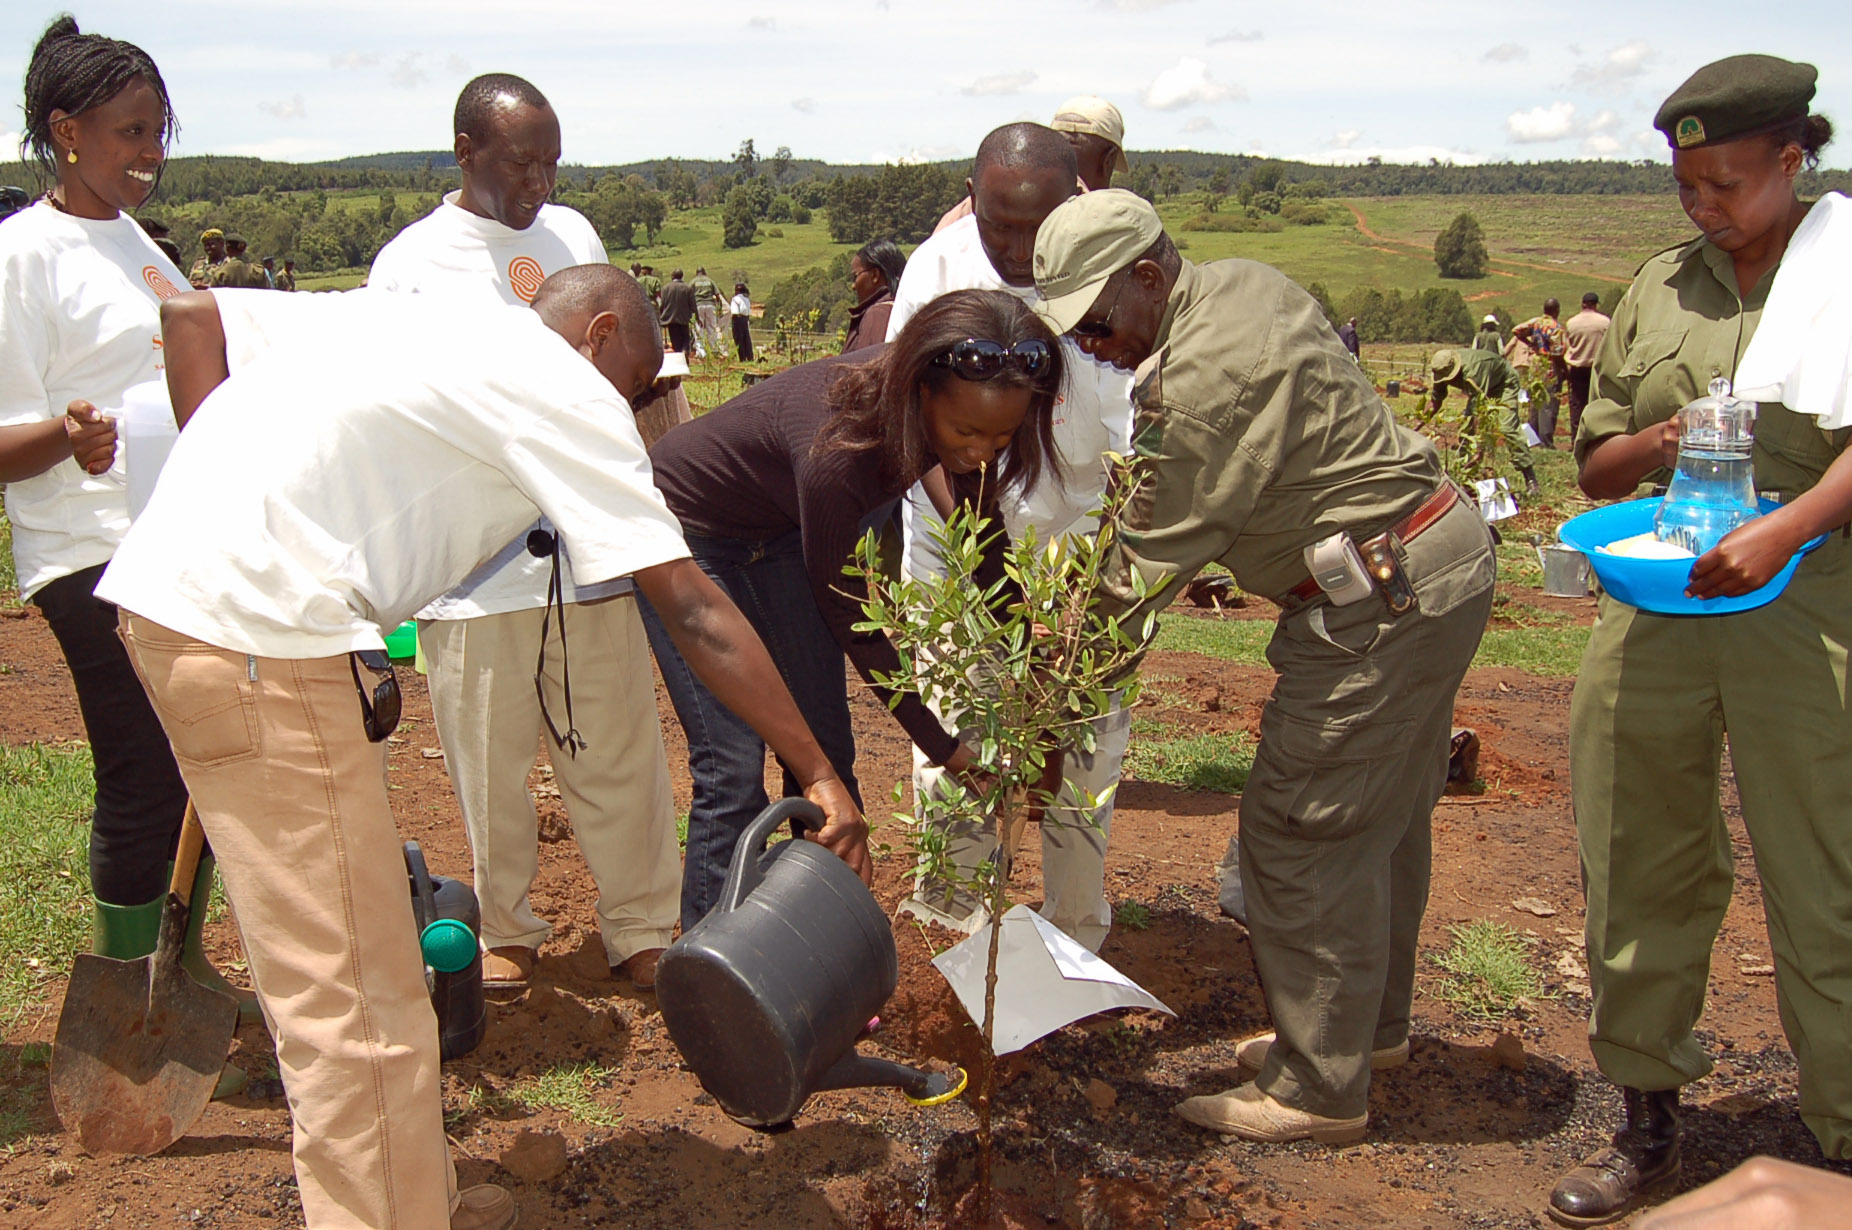 The Serena Hotels Group has planted over one million trees in the National Parks of Kenya. Photo: Courtesy of AKDN